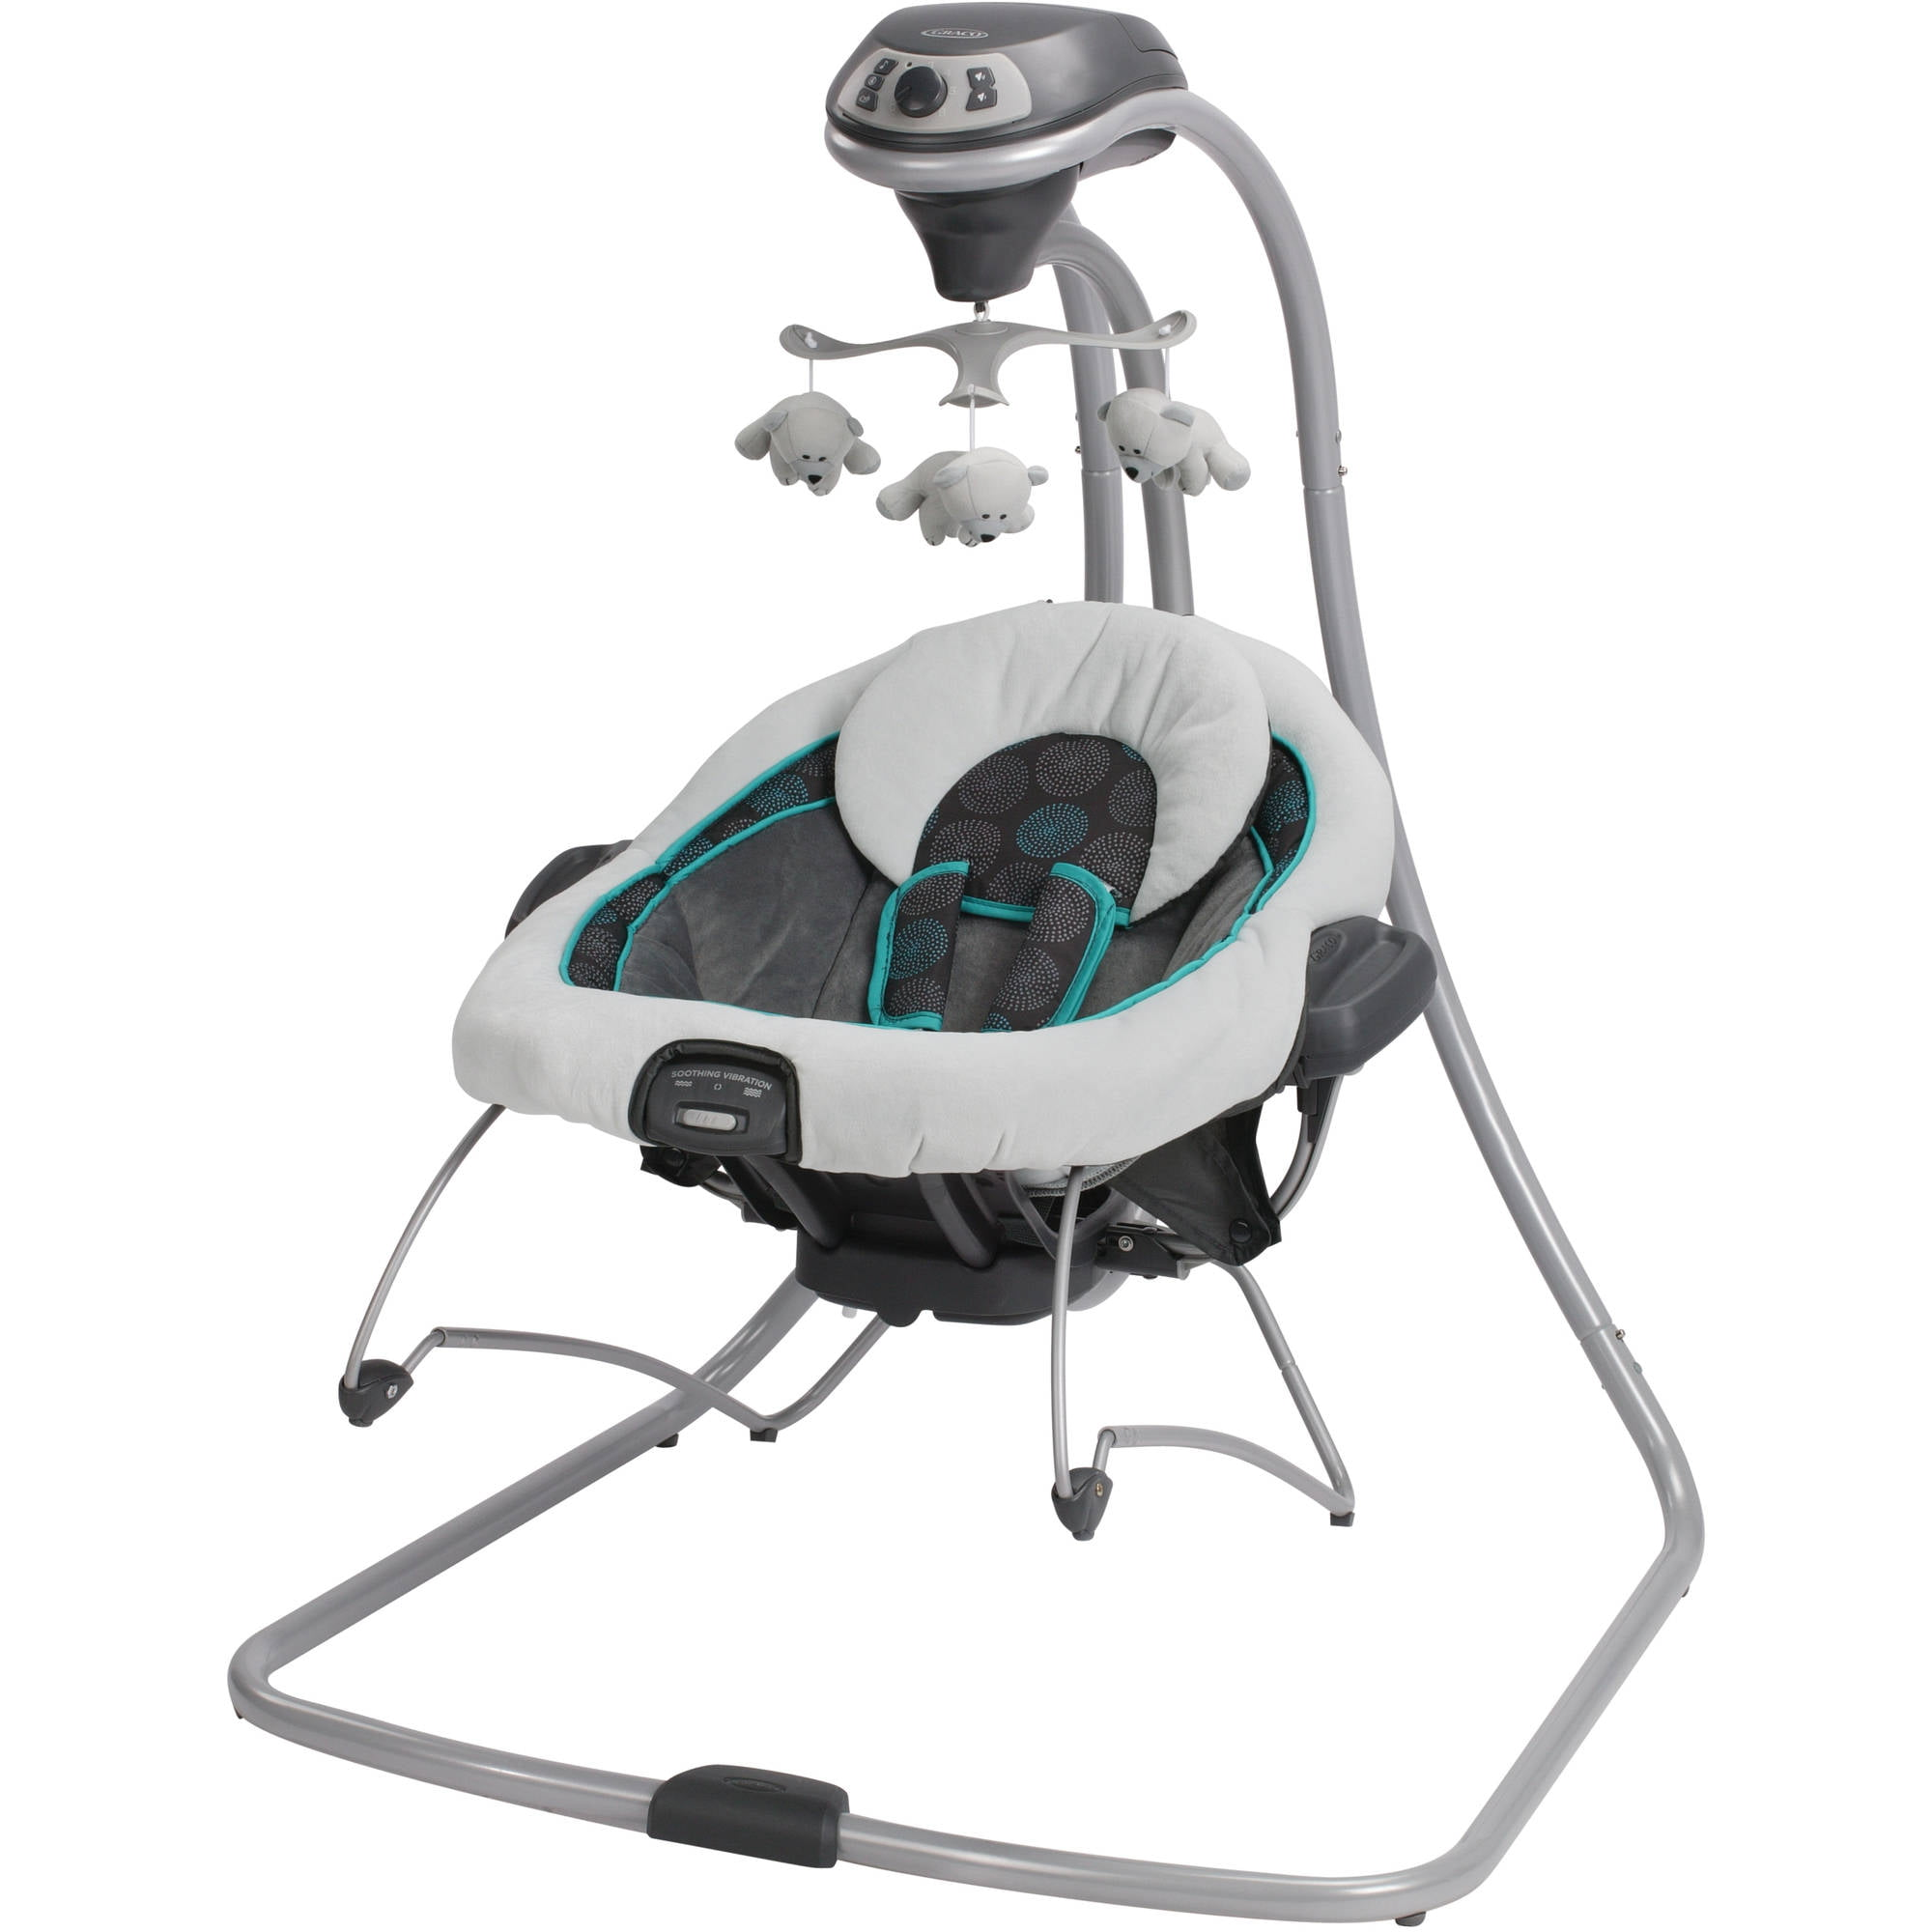 e8b1b3c49a0b Graco DuetConnect Baby Swing and Bouncer